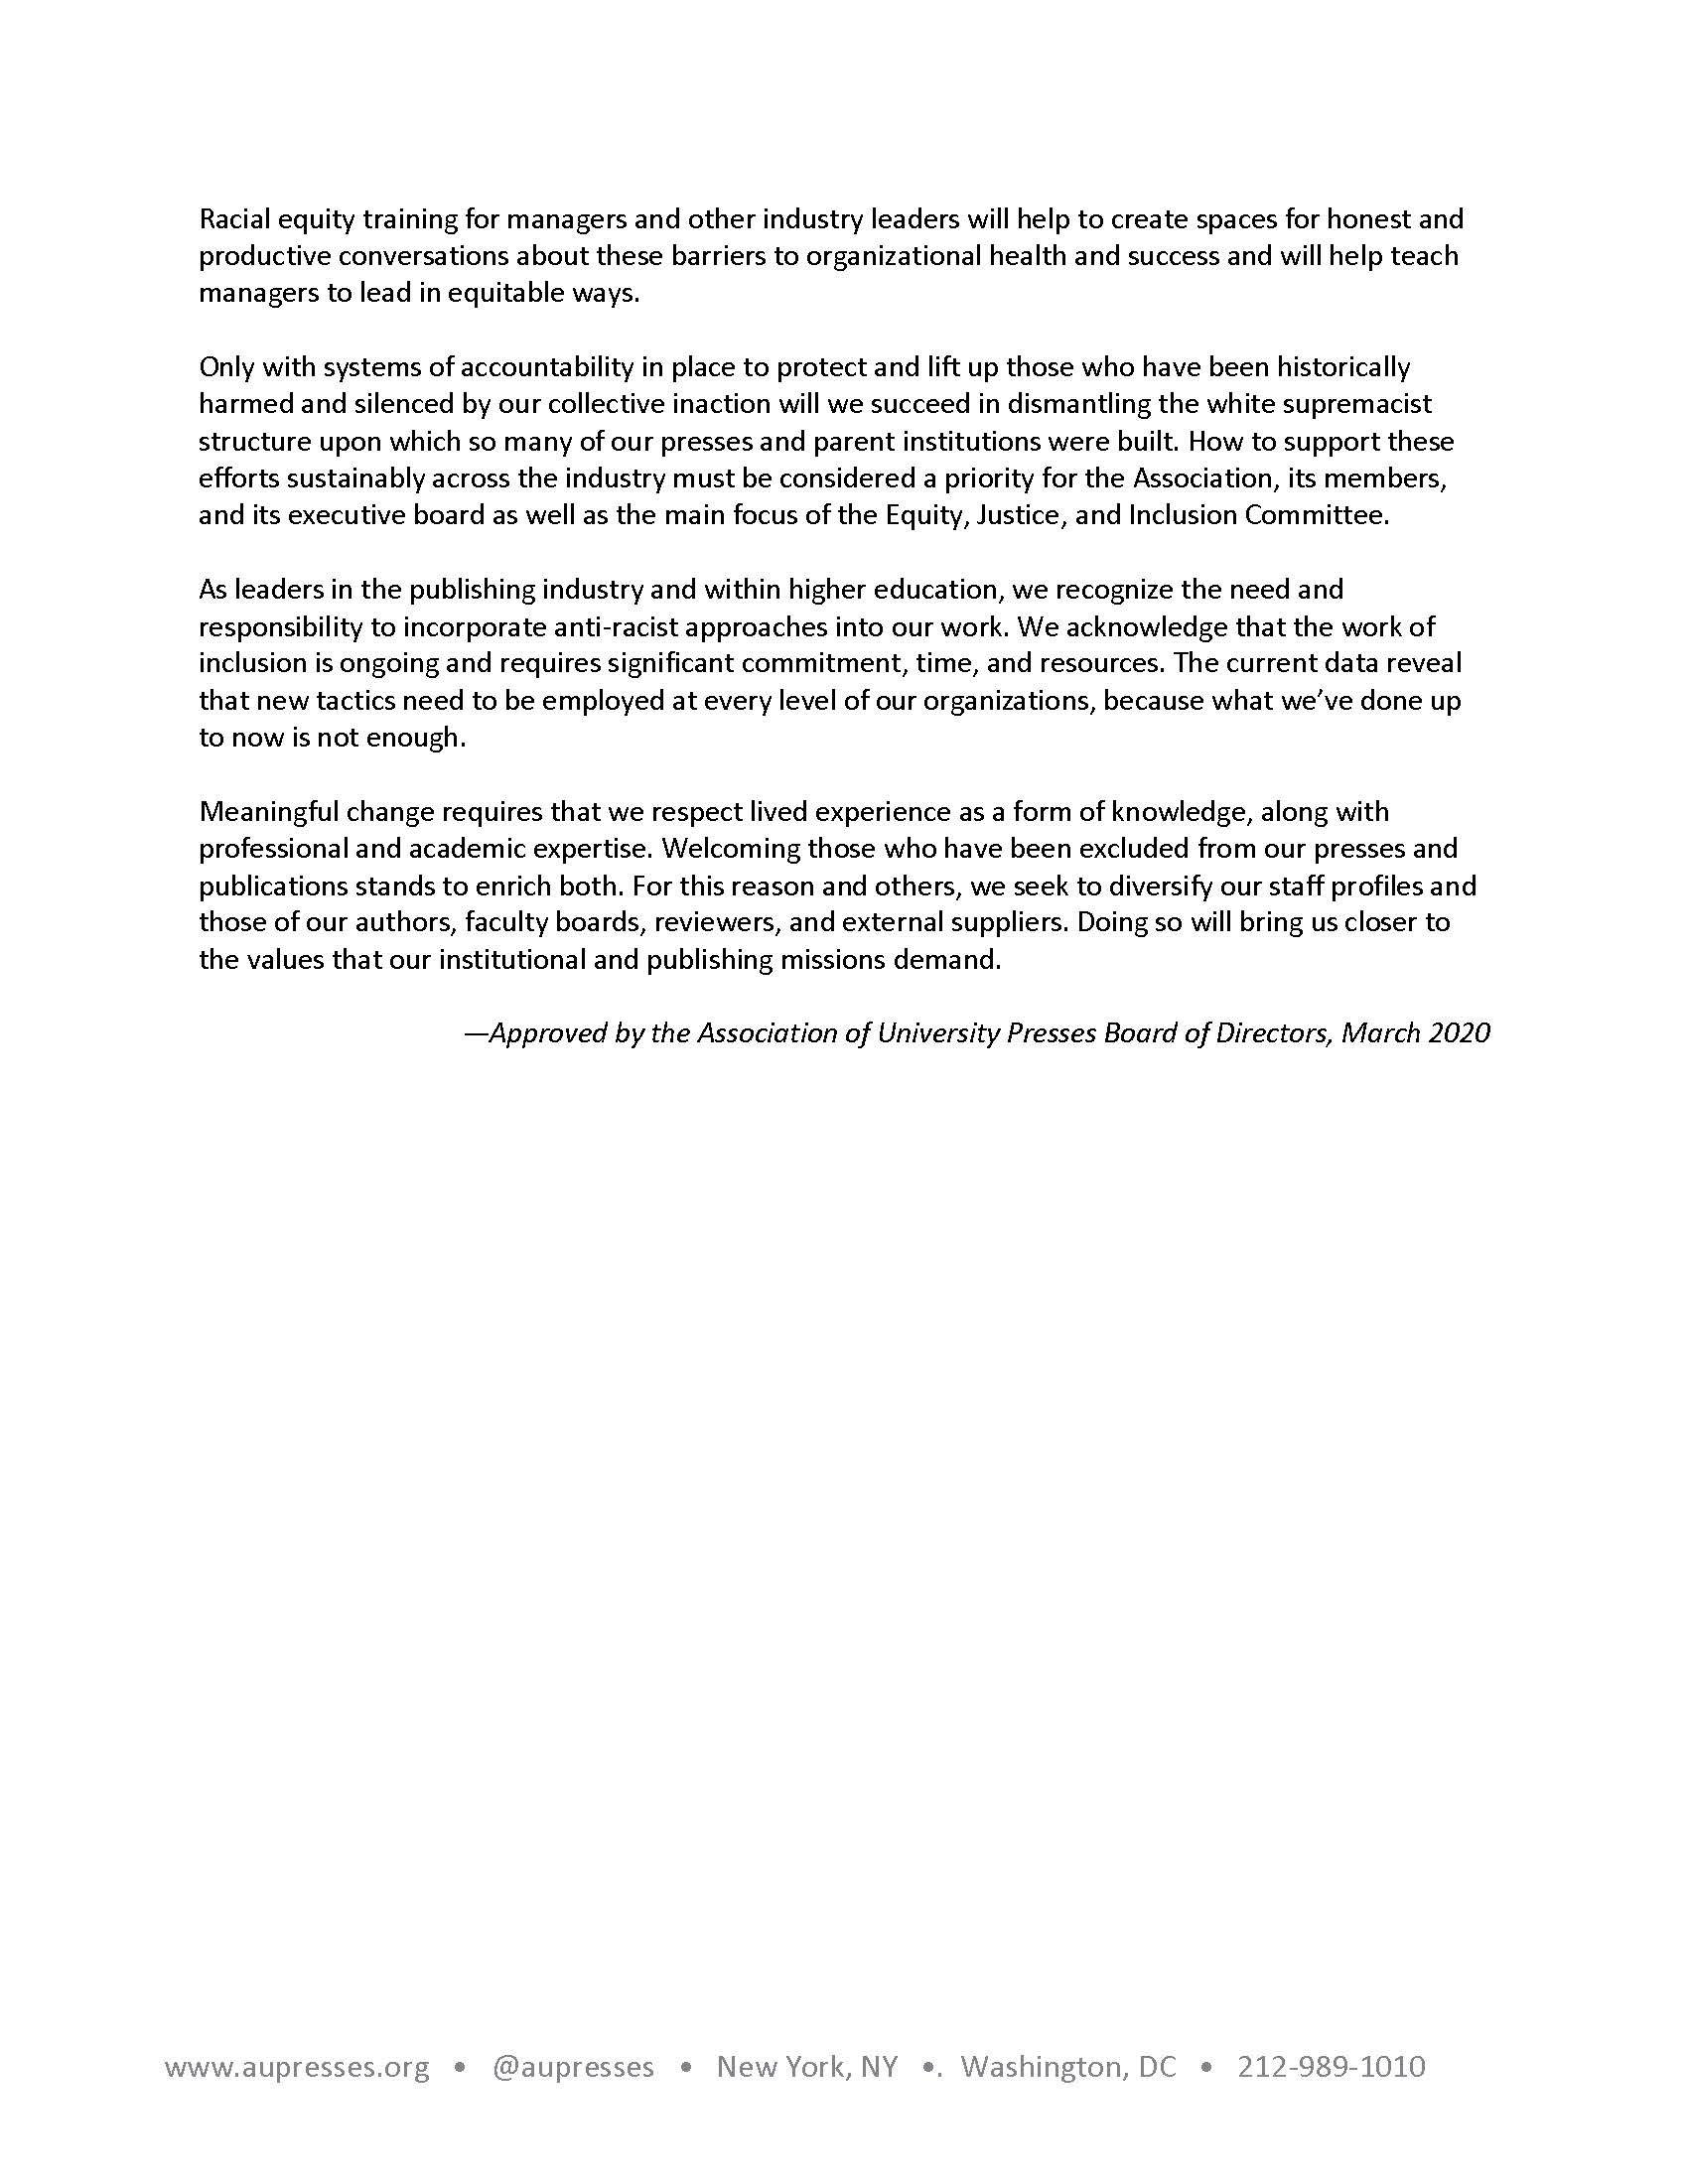 Aupresses Antiracism Statement 2020 Page 2